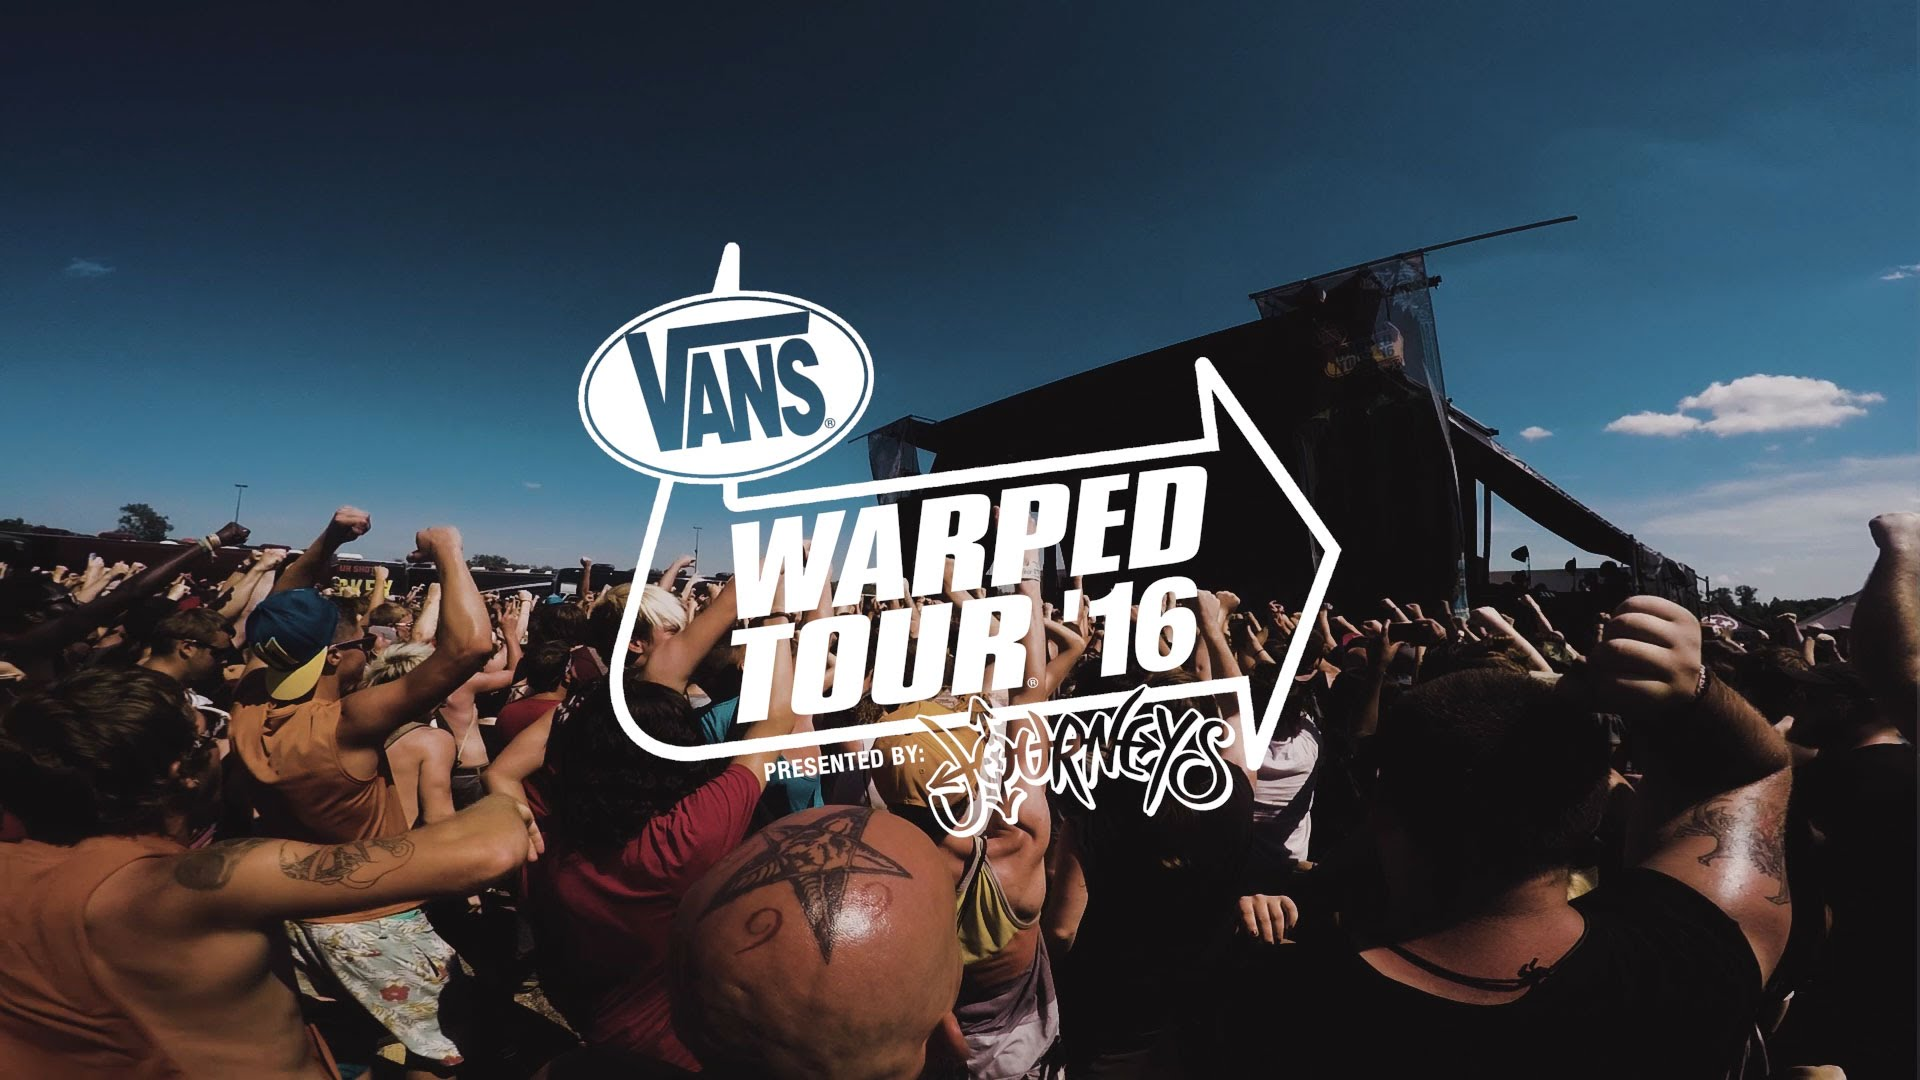 Bullet For My Valentine - Vans Warped Tour 2016